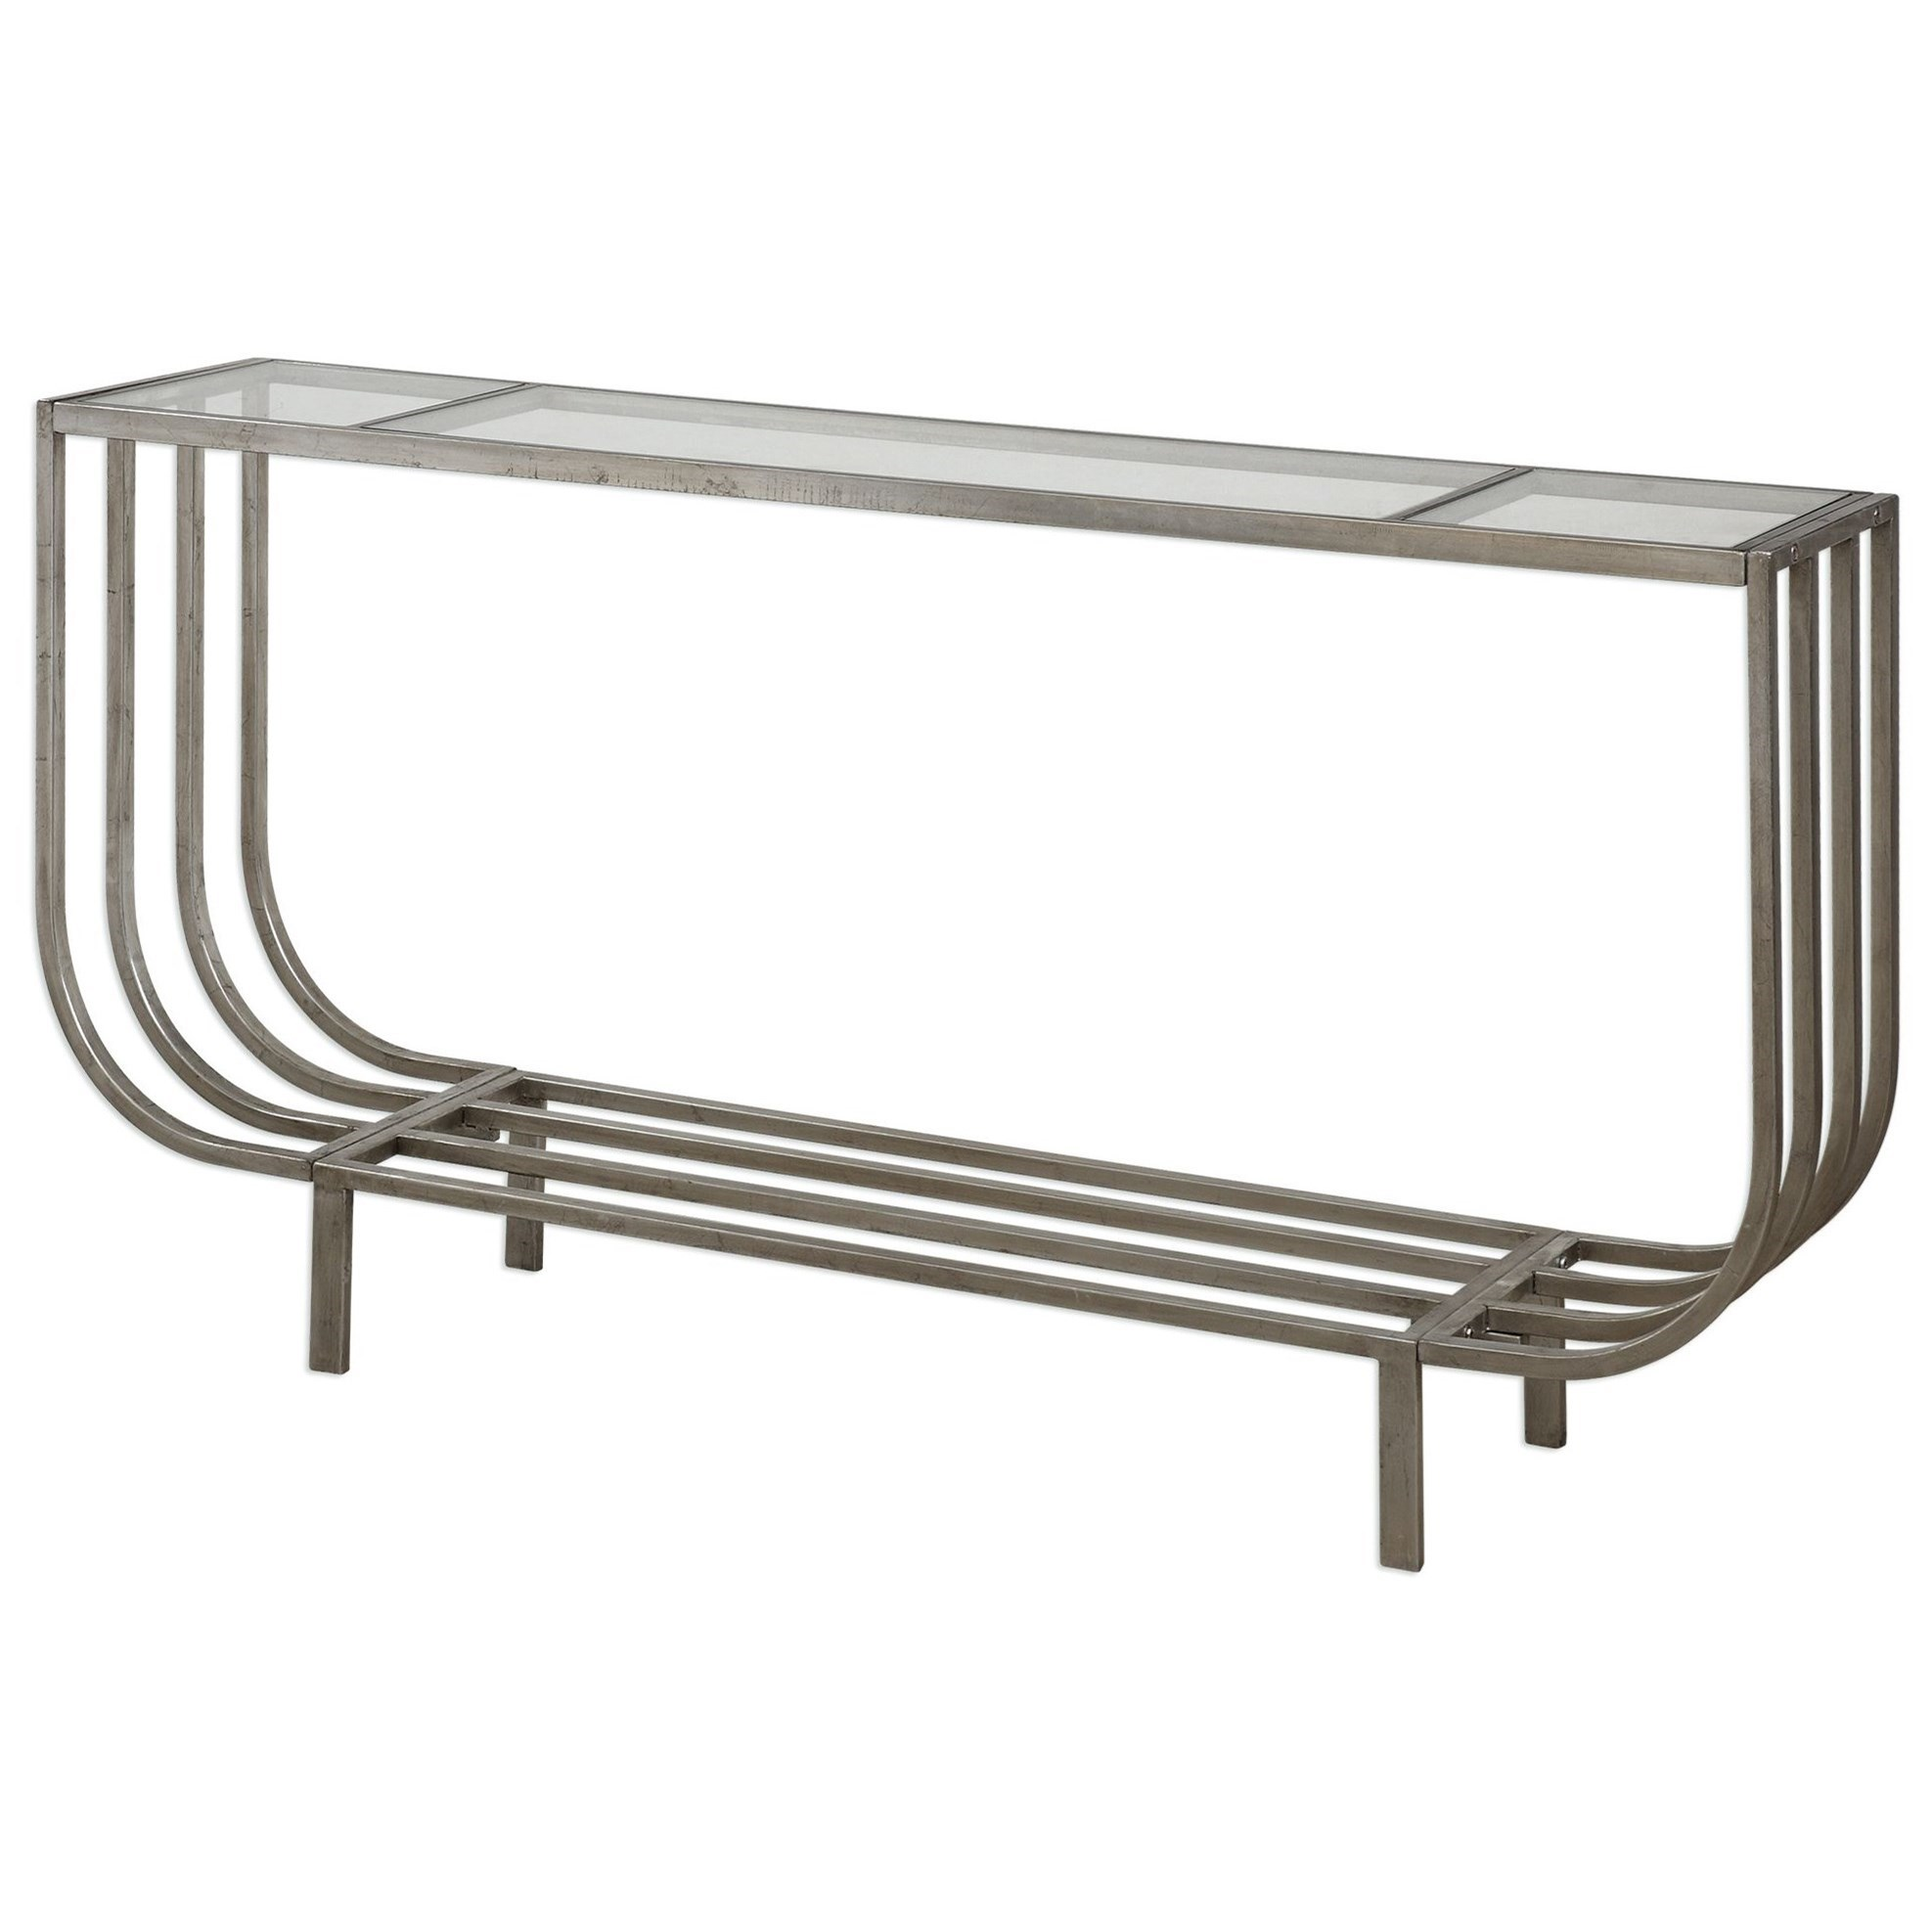 Accent Furniture - Occasional Tables Arlice Bright Silver Console Table by Uttermost at Mueller Furniture